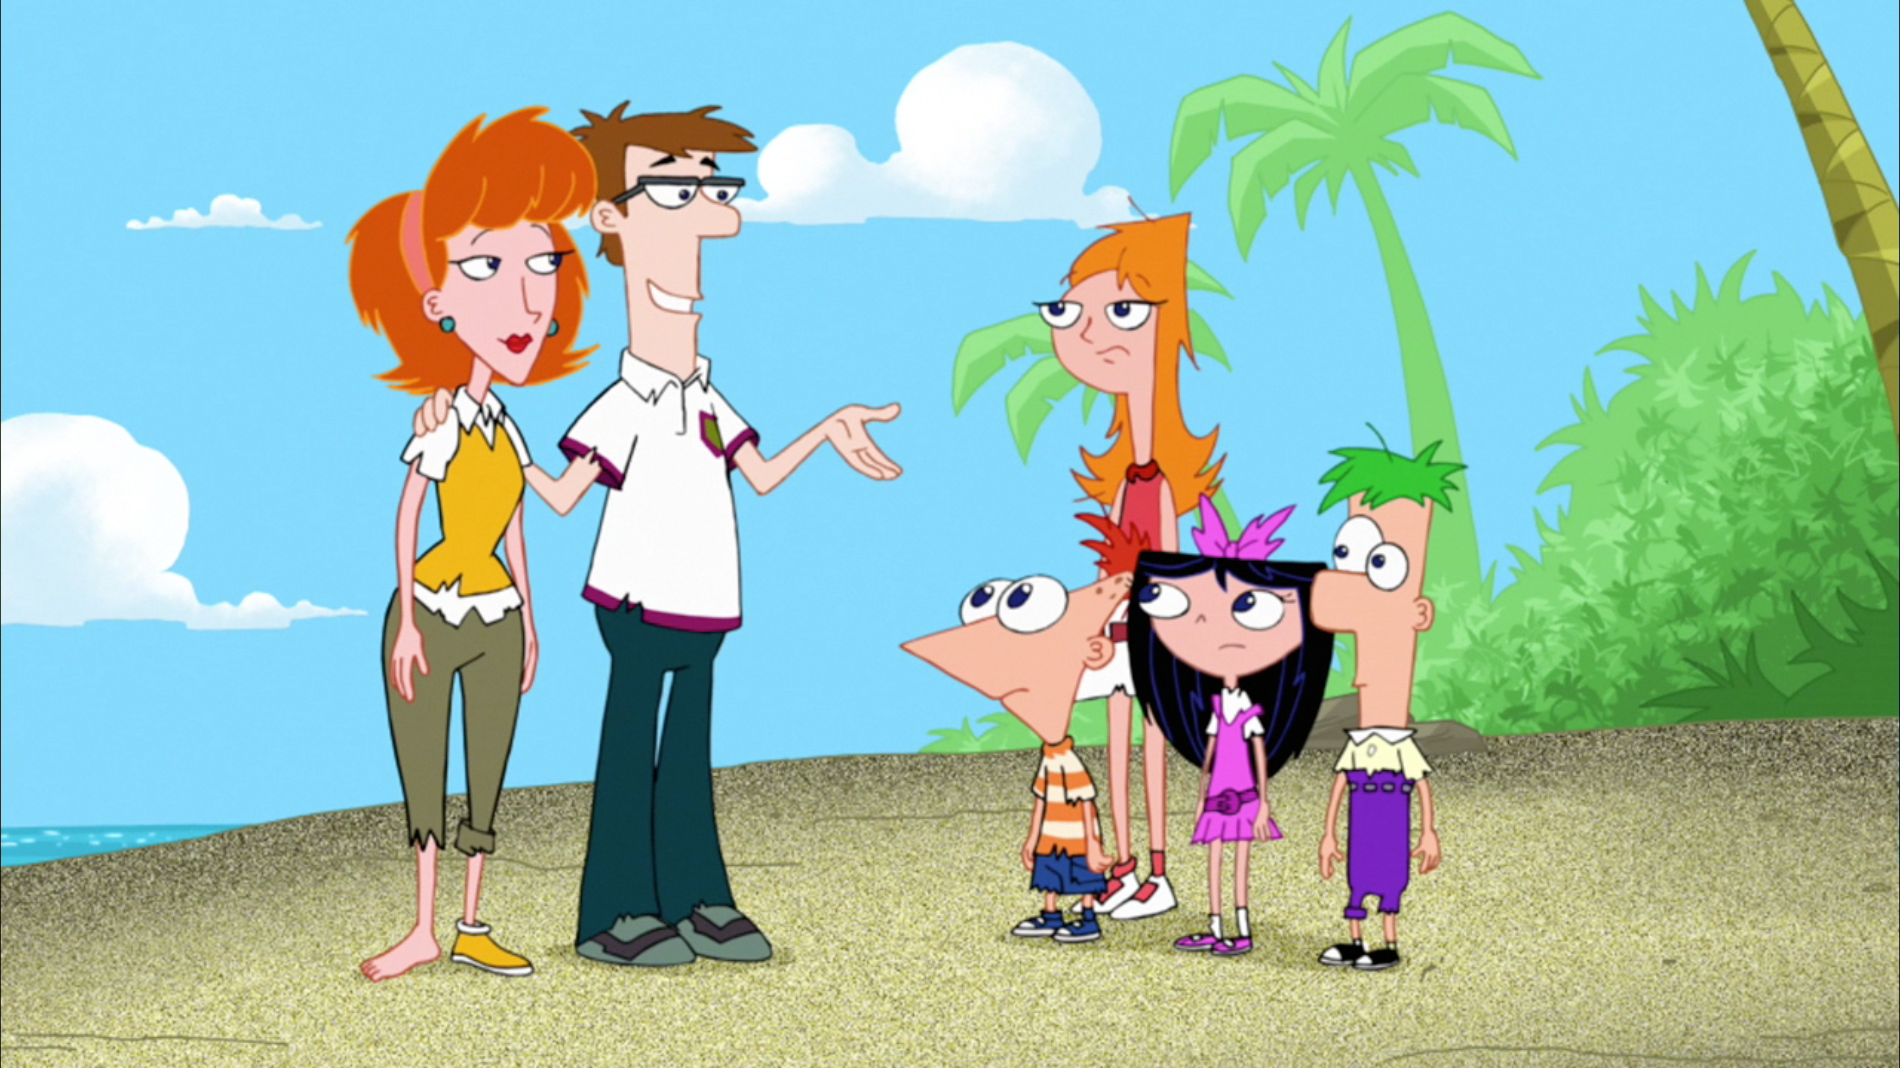 Candace Phineas And Ferb Porn Pretty swiss family phineas | phineas and ferb wiki | fandom poweredwikia